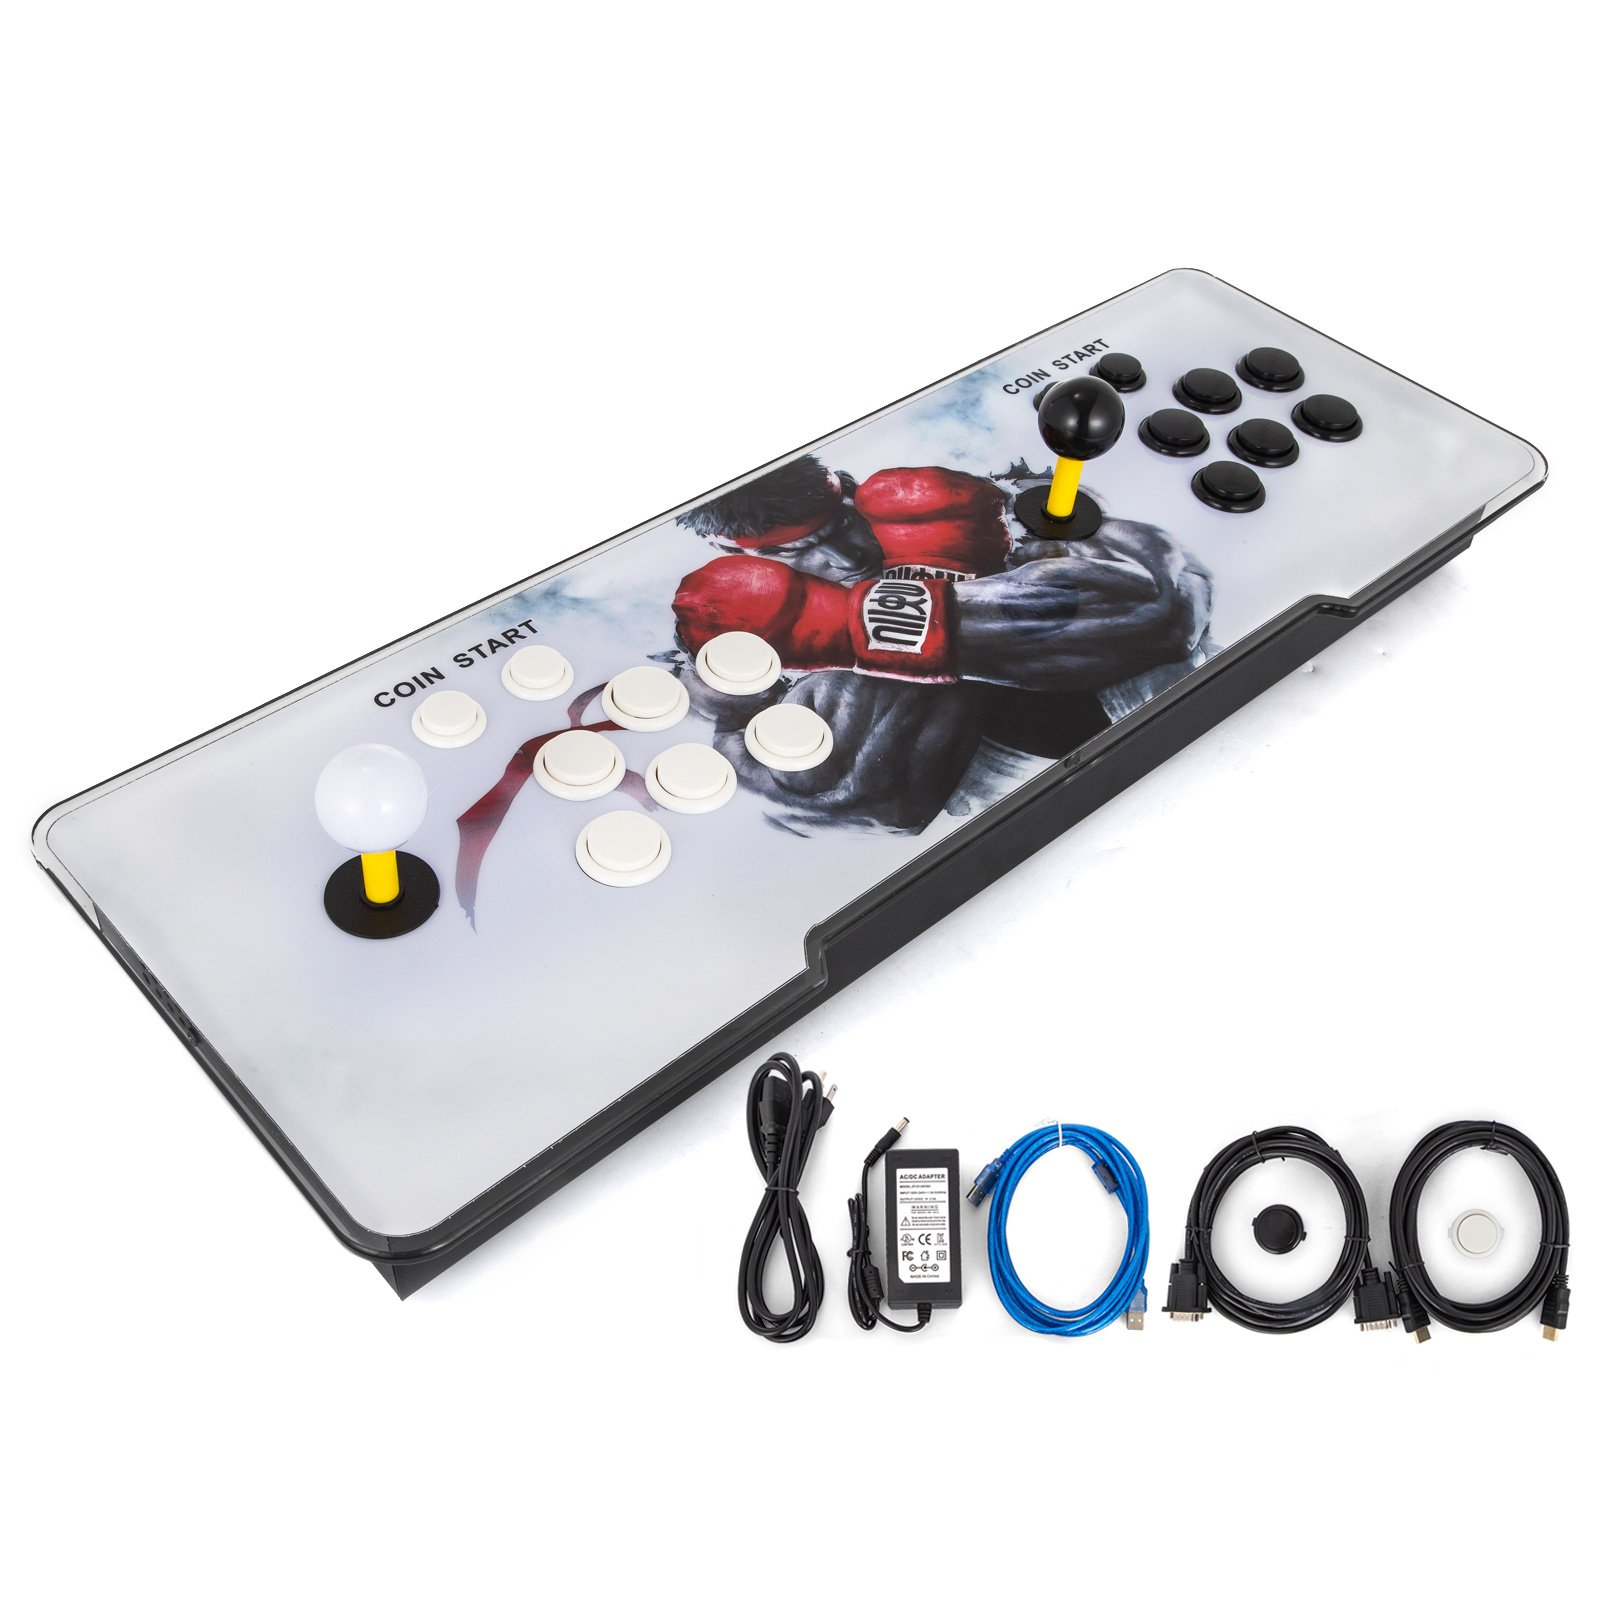 Happybuy Video Game Console, Arcade Machine 1500 Classic Games, 2 Players Pandora's box 5S multiplayer home Arcade Console 1500 Games All in 1 NON-JAMMA PCB Double Stick Newest Design Buttons Power HD by Happybuy (Image #4)